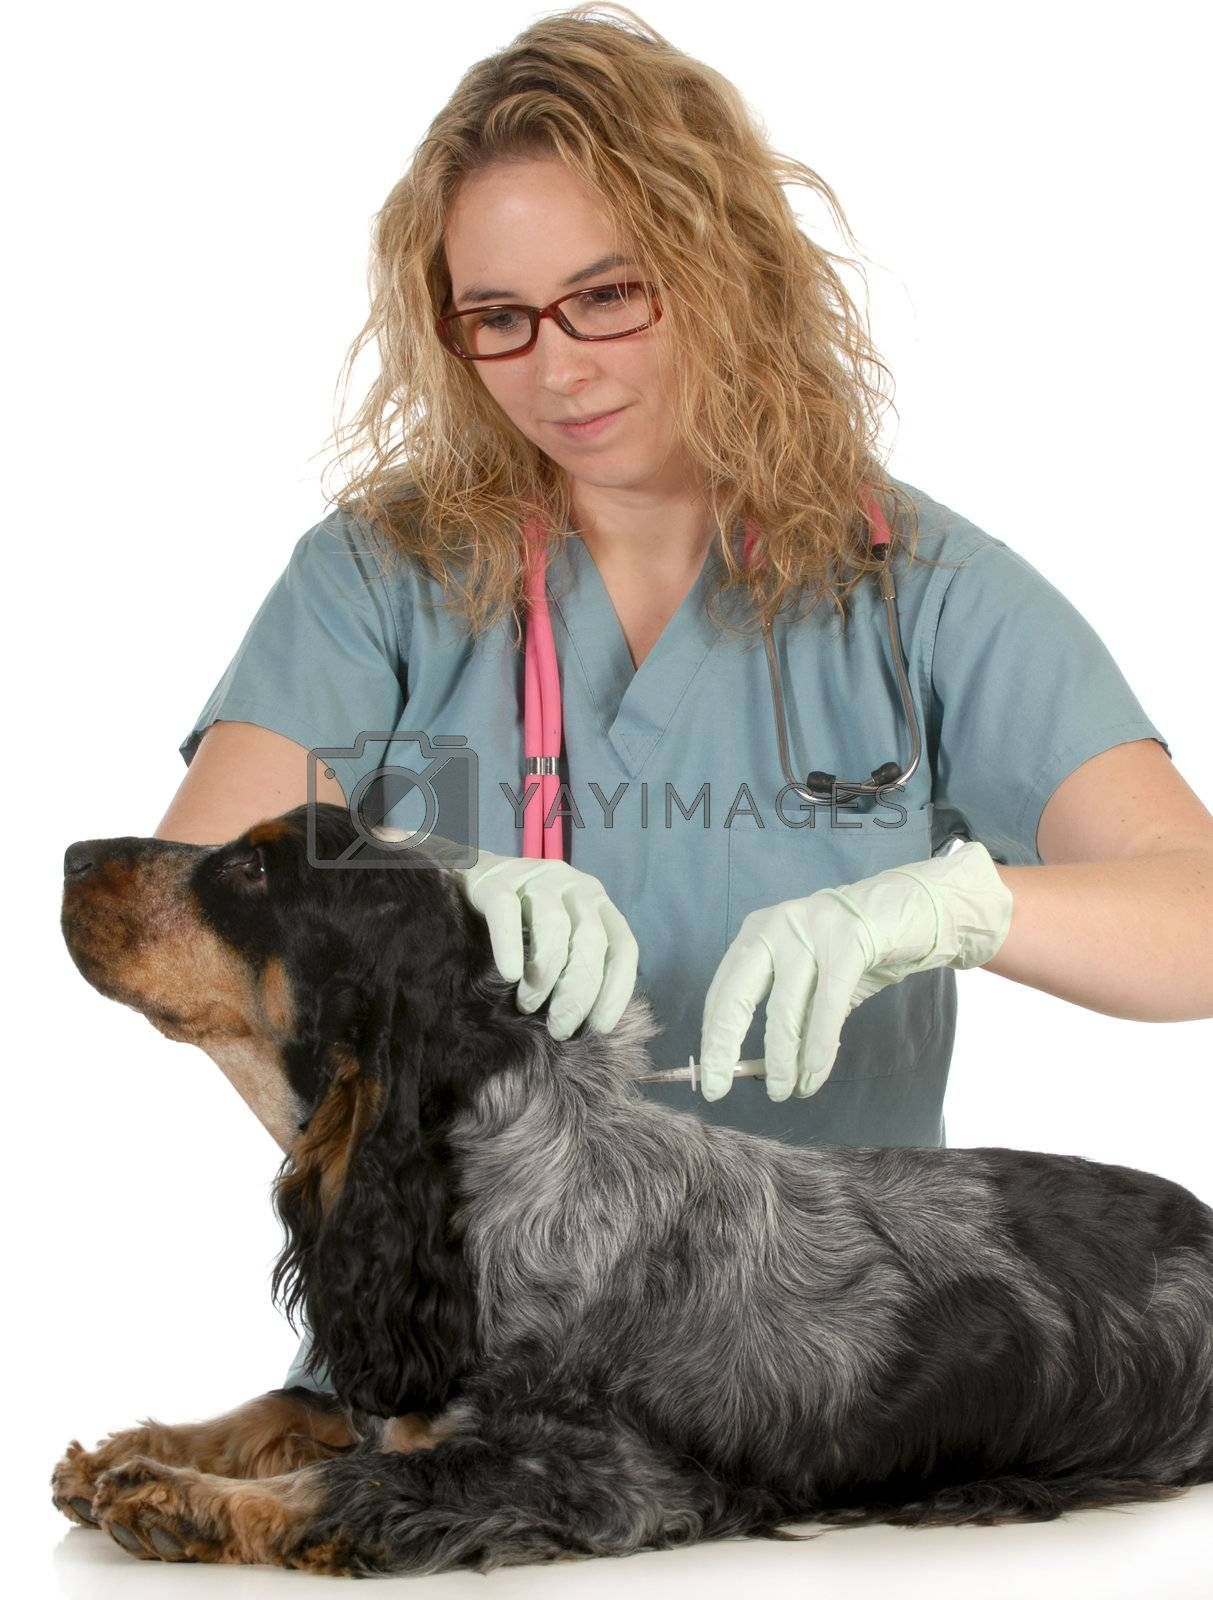 veterinary care - english cocker spaniel being microchipped by a veterinarian isolated on white background